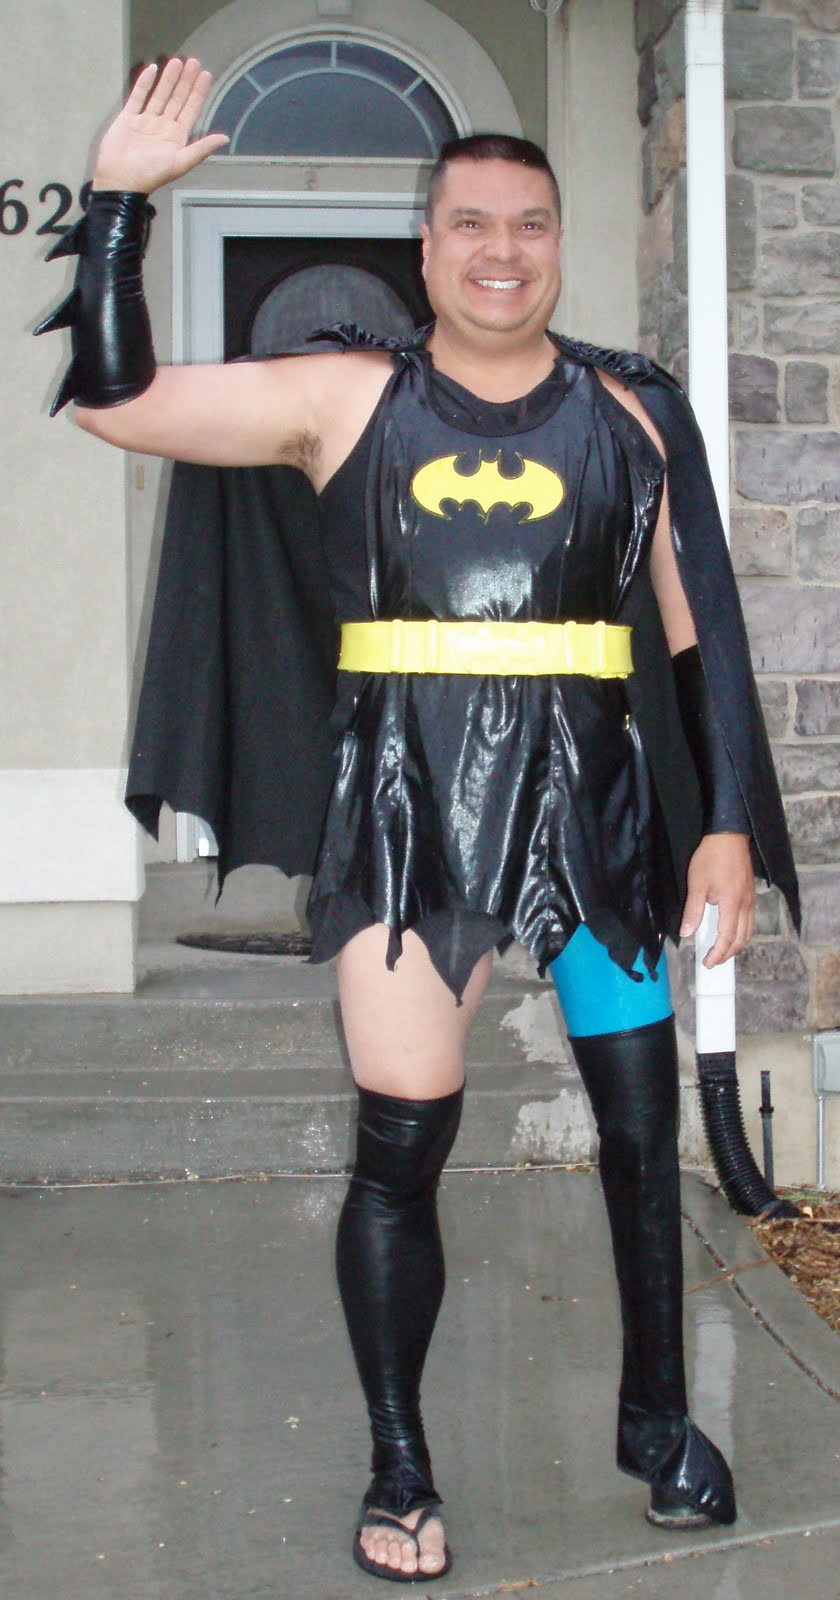 Dale as...Batgirl